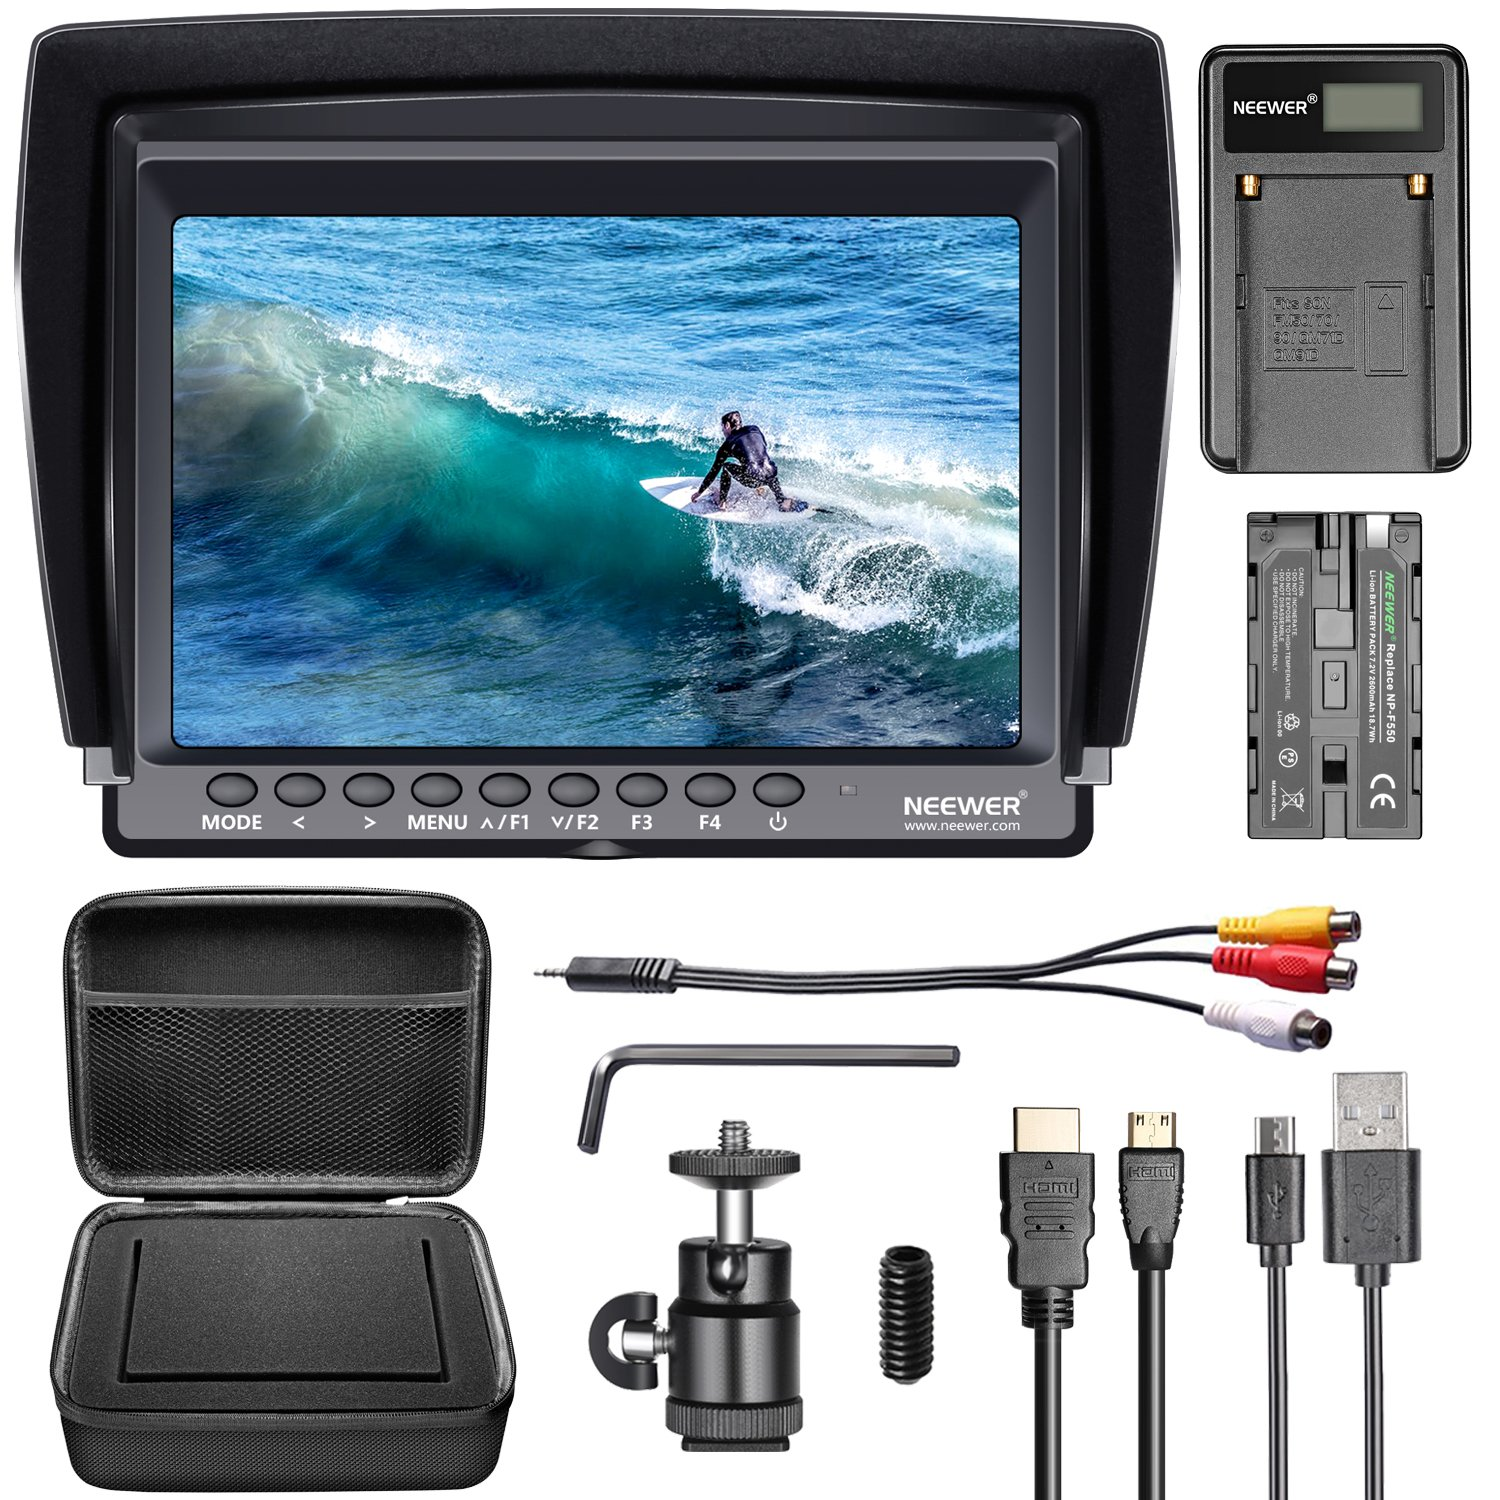 Neewer F100 7-inch 1280x800 IPS Screen Camera Field Monitor Kit with 2600mAh NP-F550 Replacement Li-ion Battery; Micro USB Battery Charger and Black Carrying Case for Nikon Canon Sony DSLR Cameras